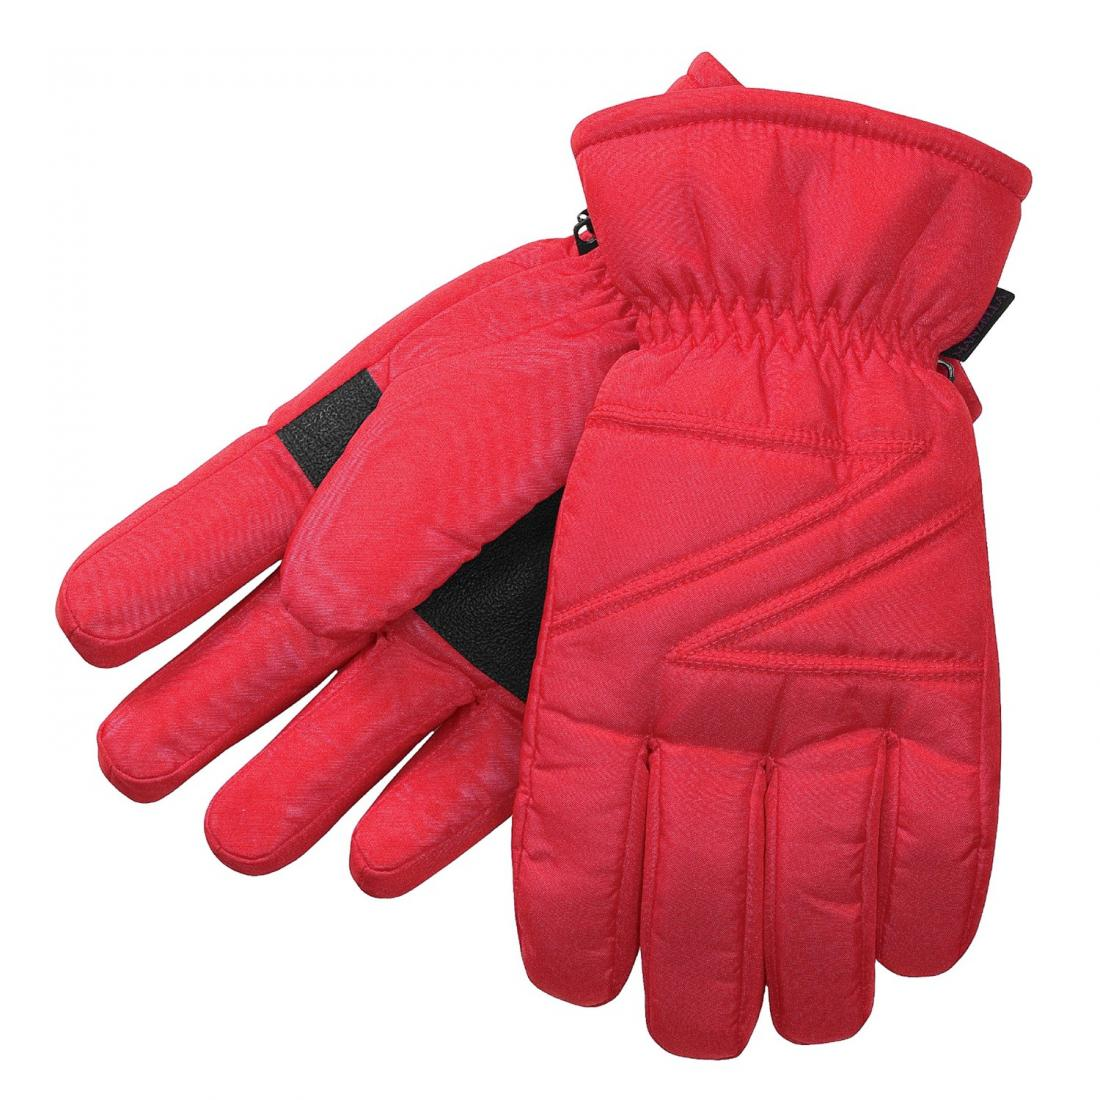 Very mens gloves - Fall And Winter Cycling Gloves Manzella Ski Gloves Waterproof Men